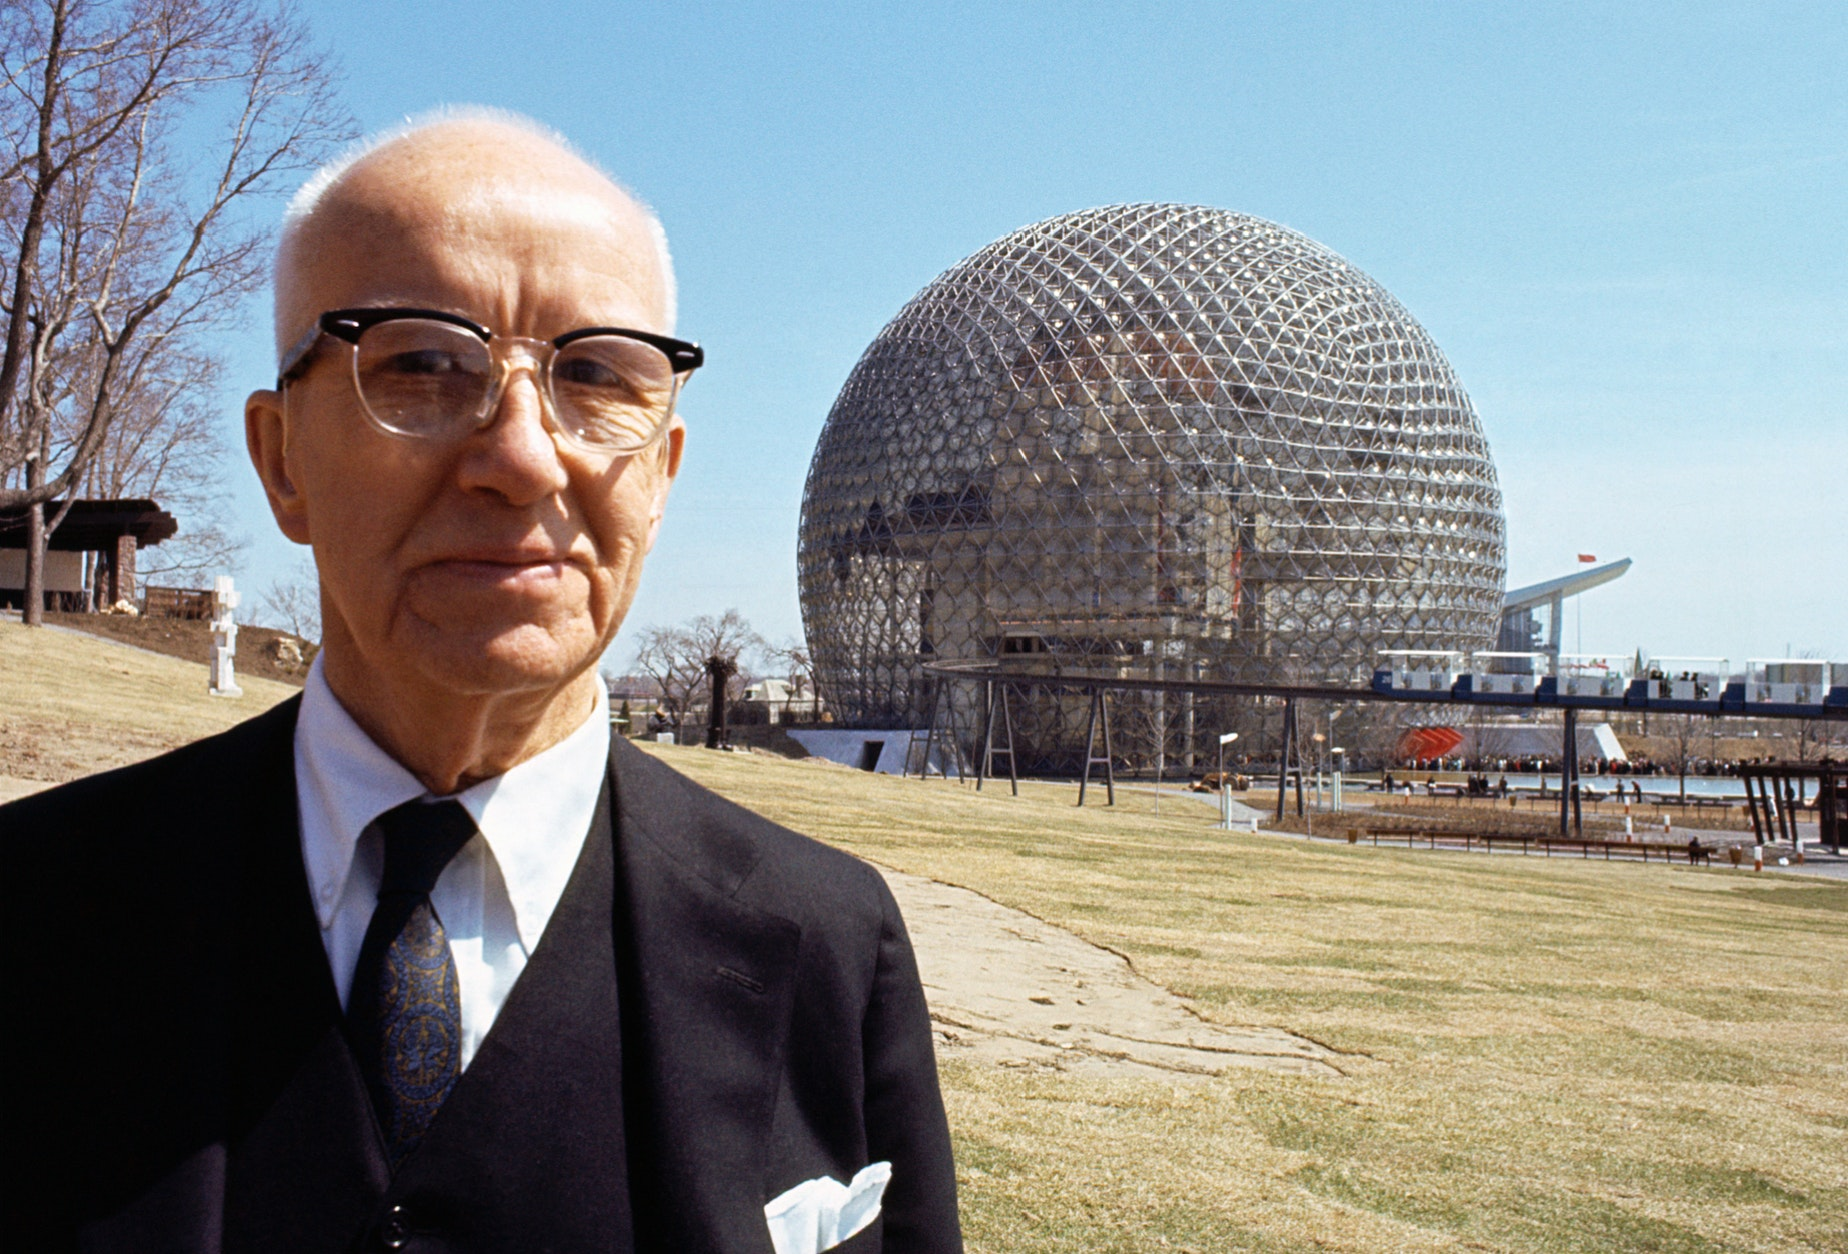 The Love Song of R. Buckminster Fuller by Sam Green with live score by Yo La Tengo